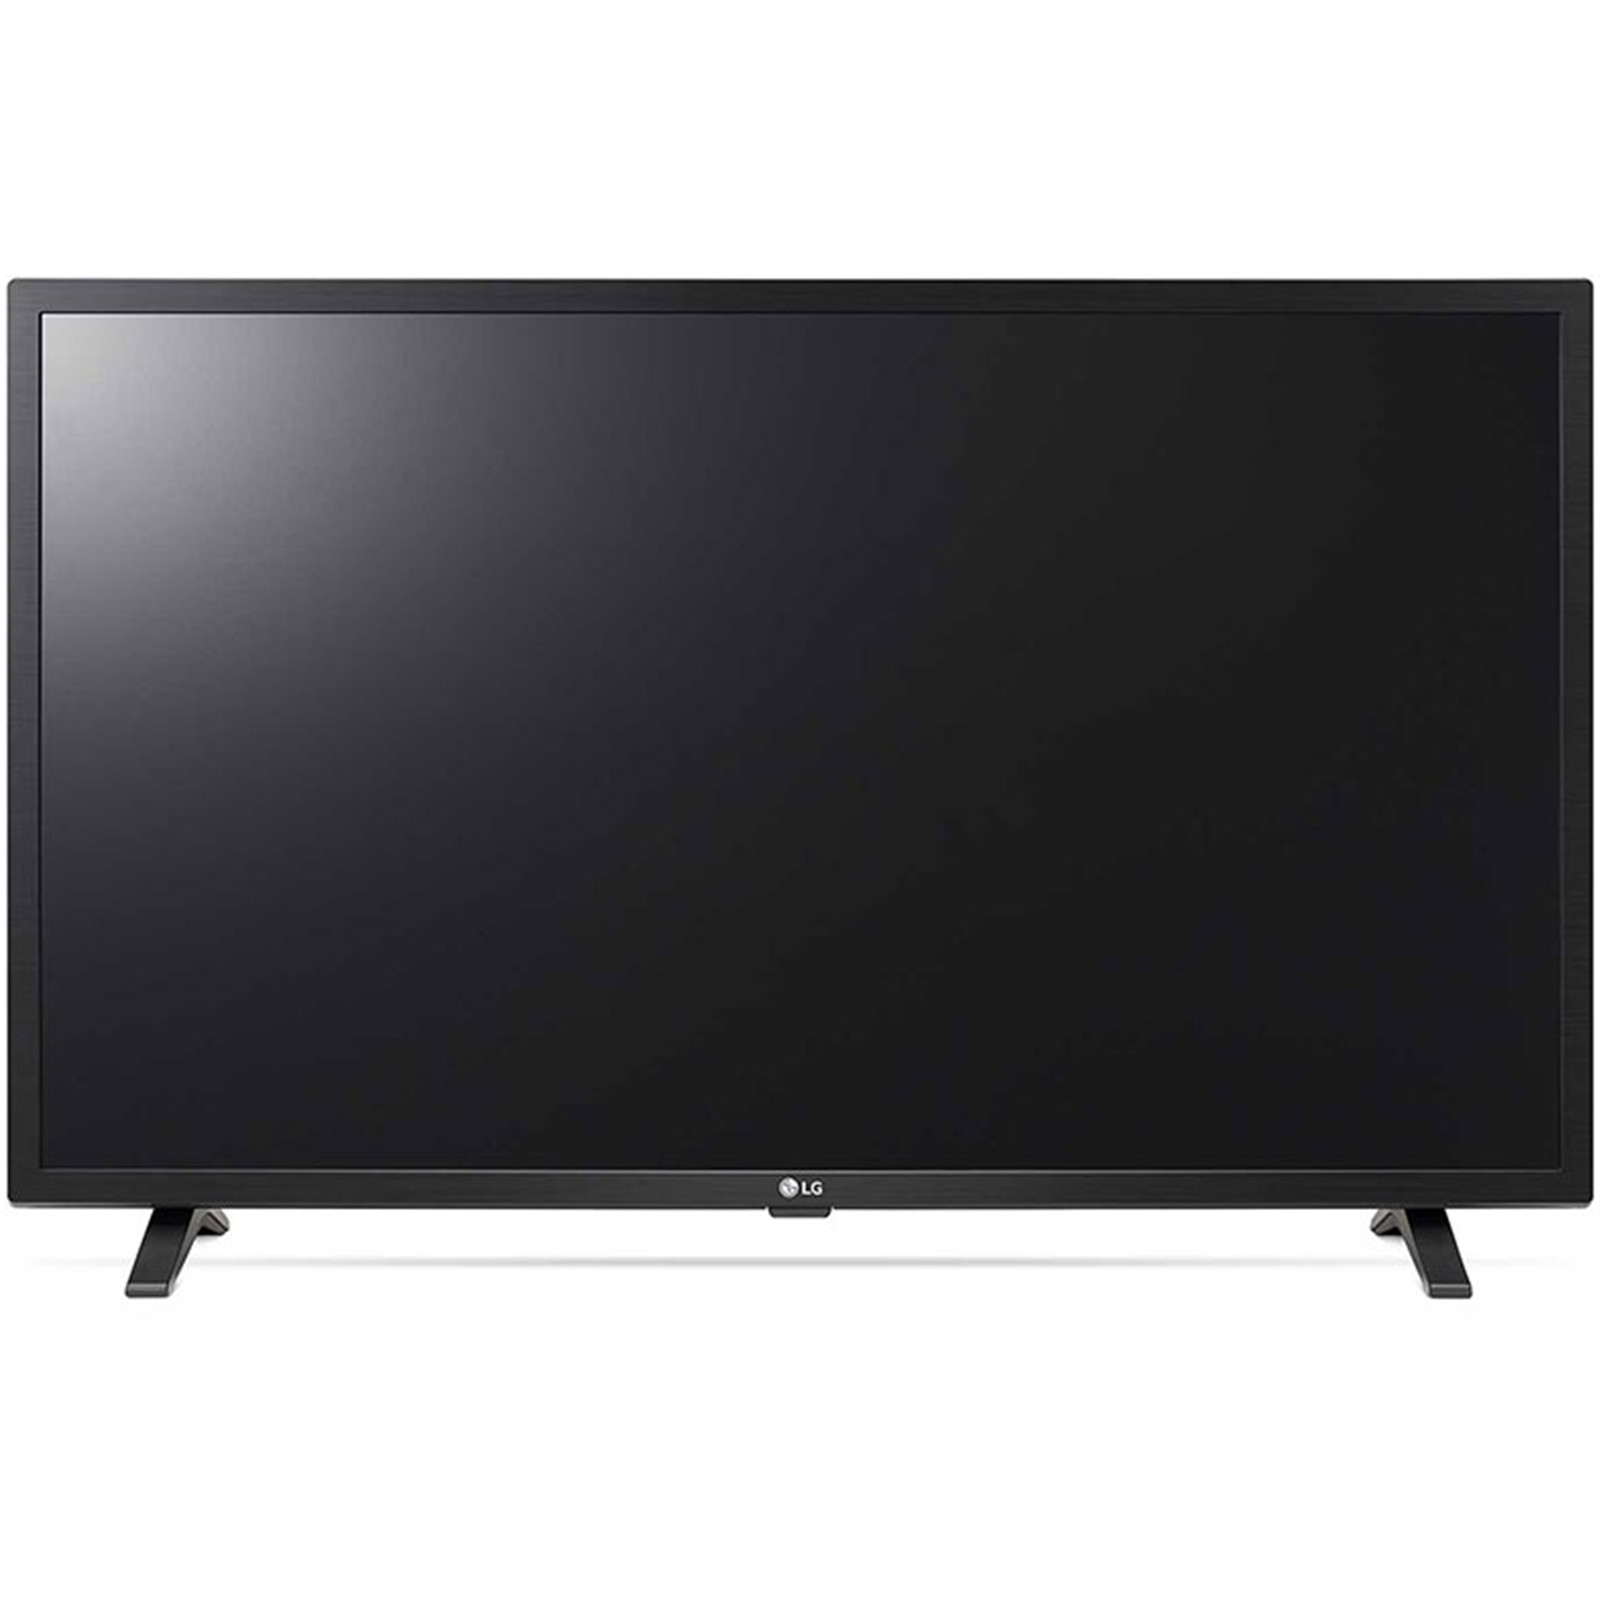 MONITOR LED TV 32 LG+RECEIVER SMART HD READY 32LM630 ,LED